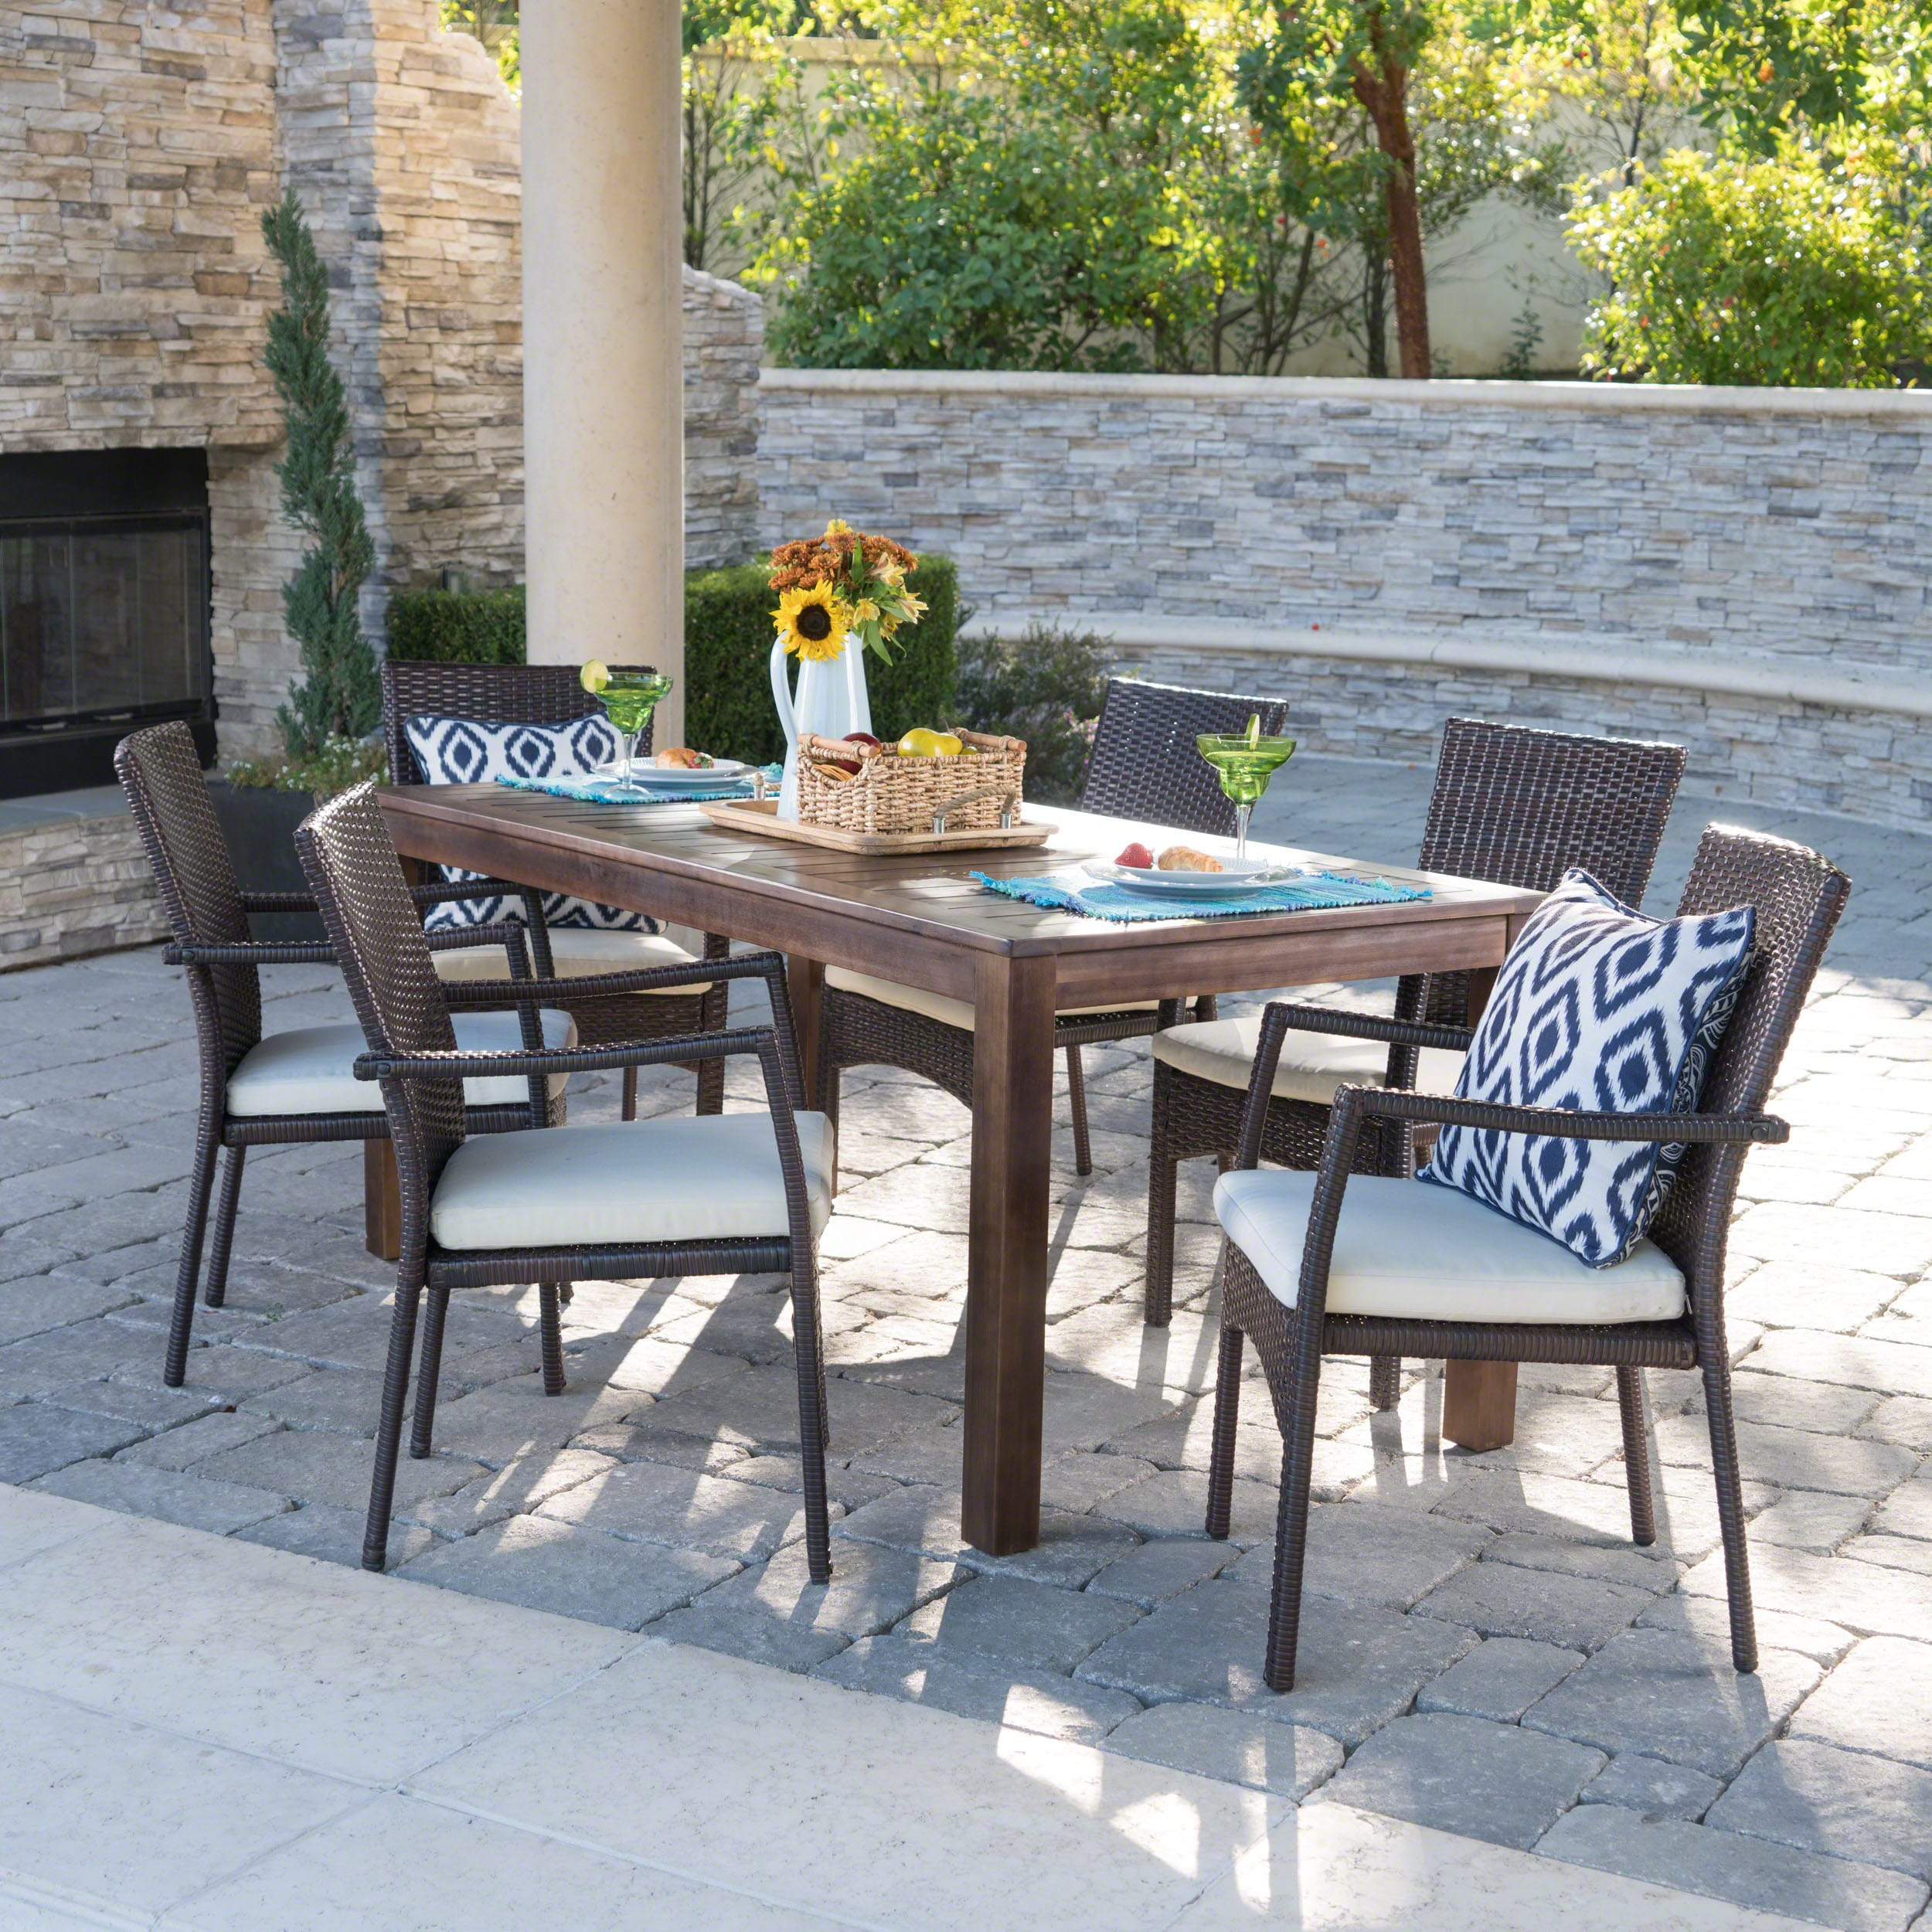 Geelong outdoor 7 piece rectangle aluminum wicker wood dining set with cushions by christopher knight home